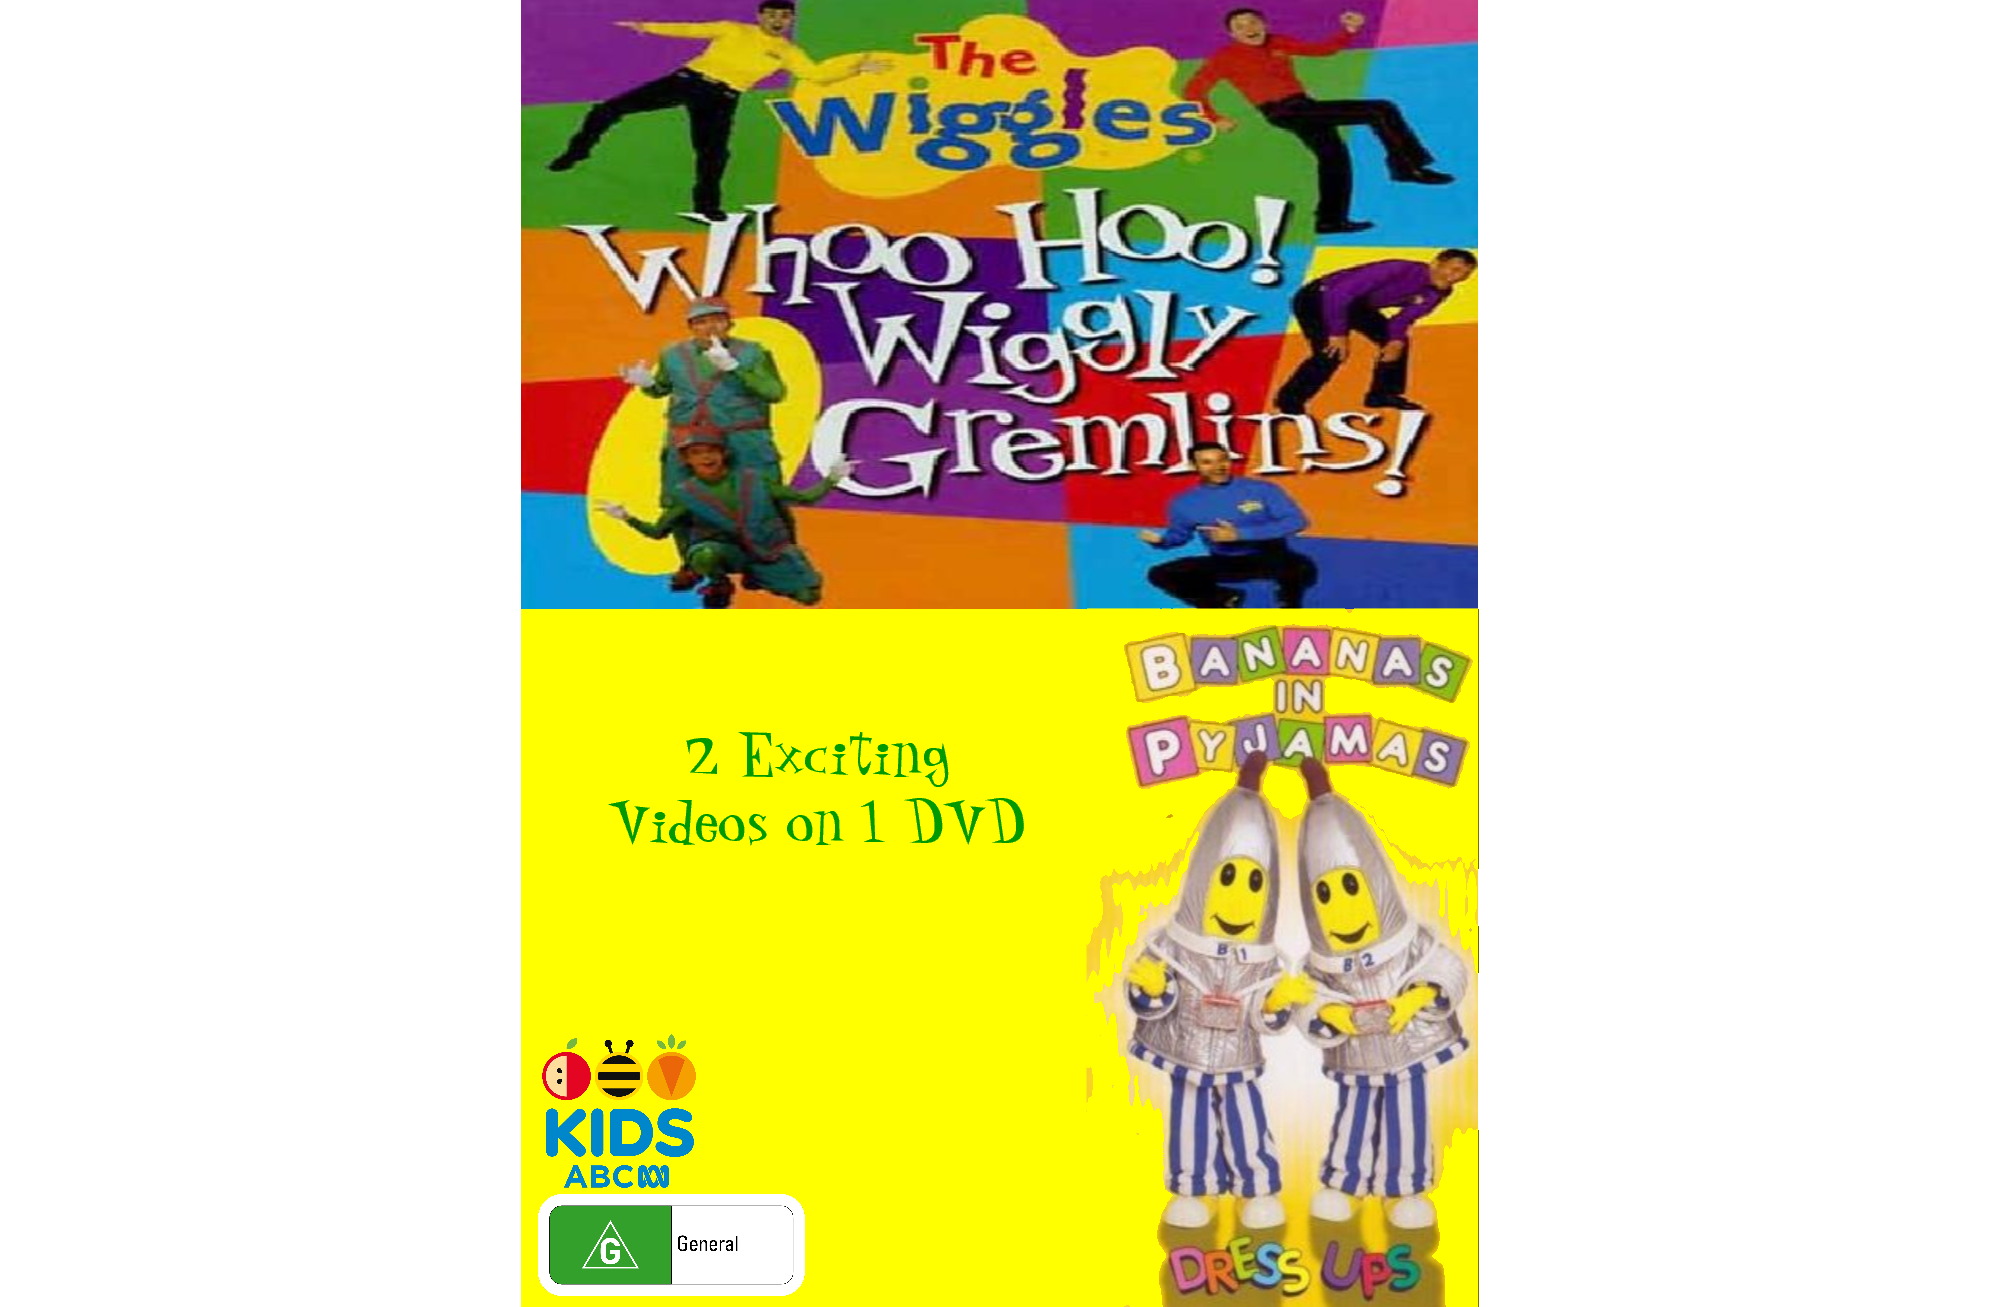 The Wiggles and Bananas in Pyjamas: Whoo Hoo Wiggly Gremlins and Dress Ups